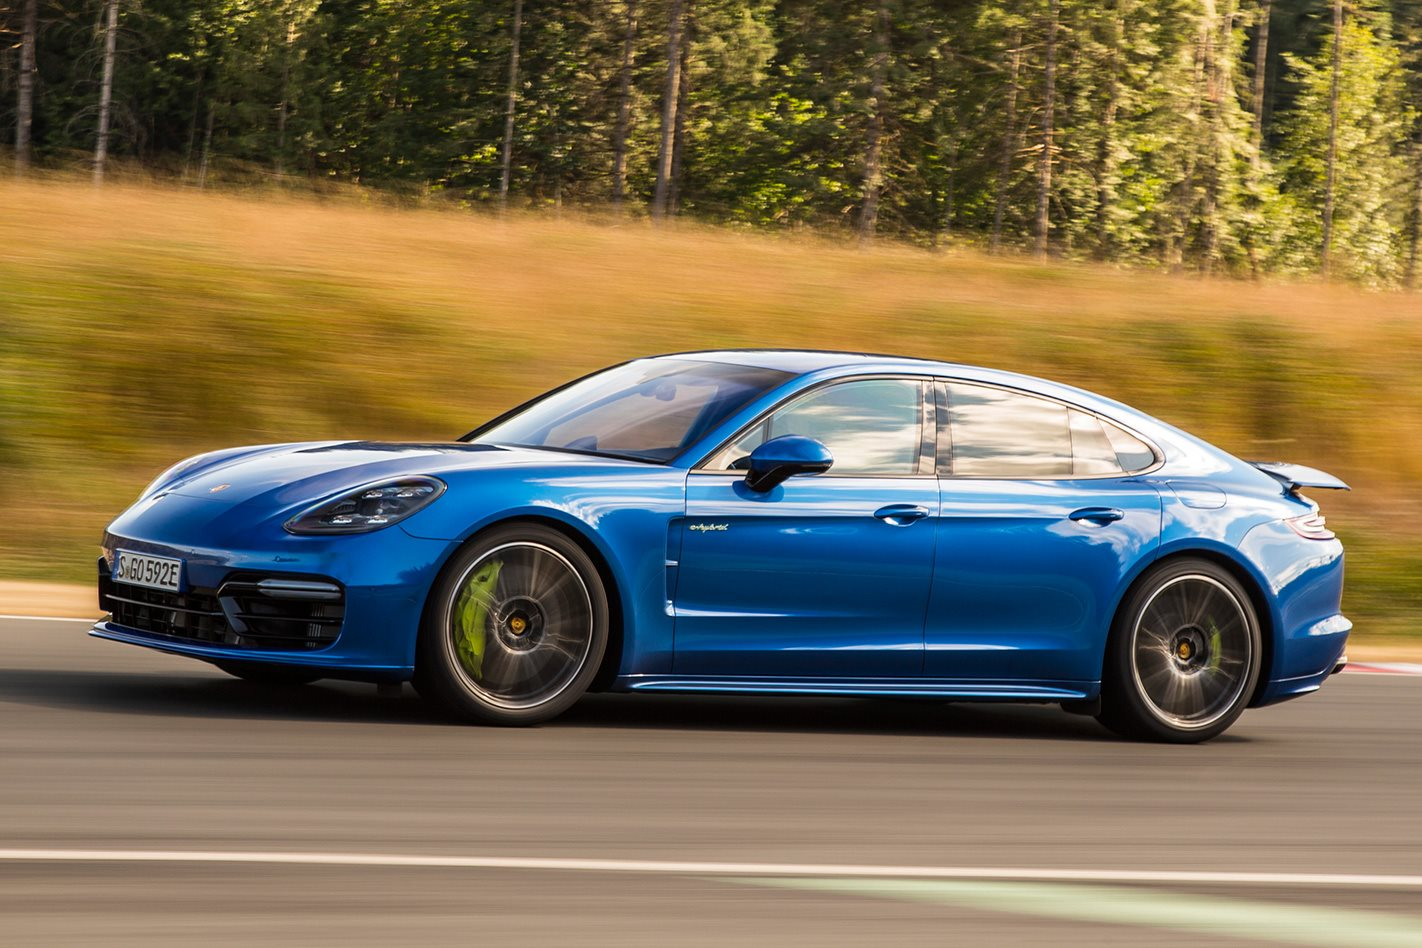 2017 Porsche Panamera Turbo S E-Hybrid side profile